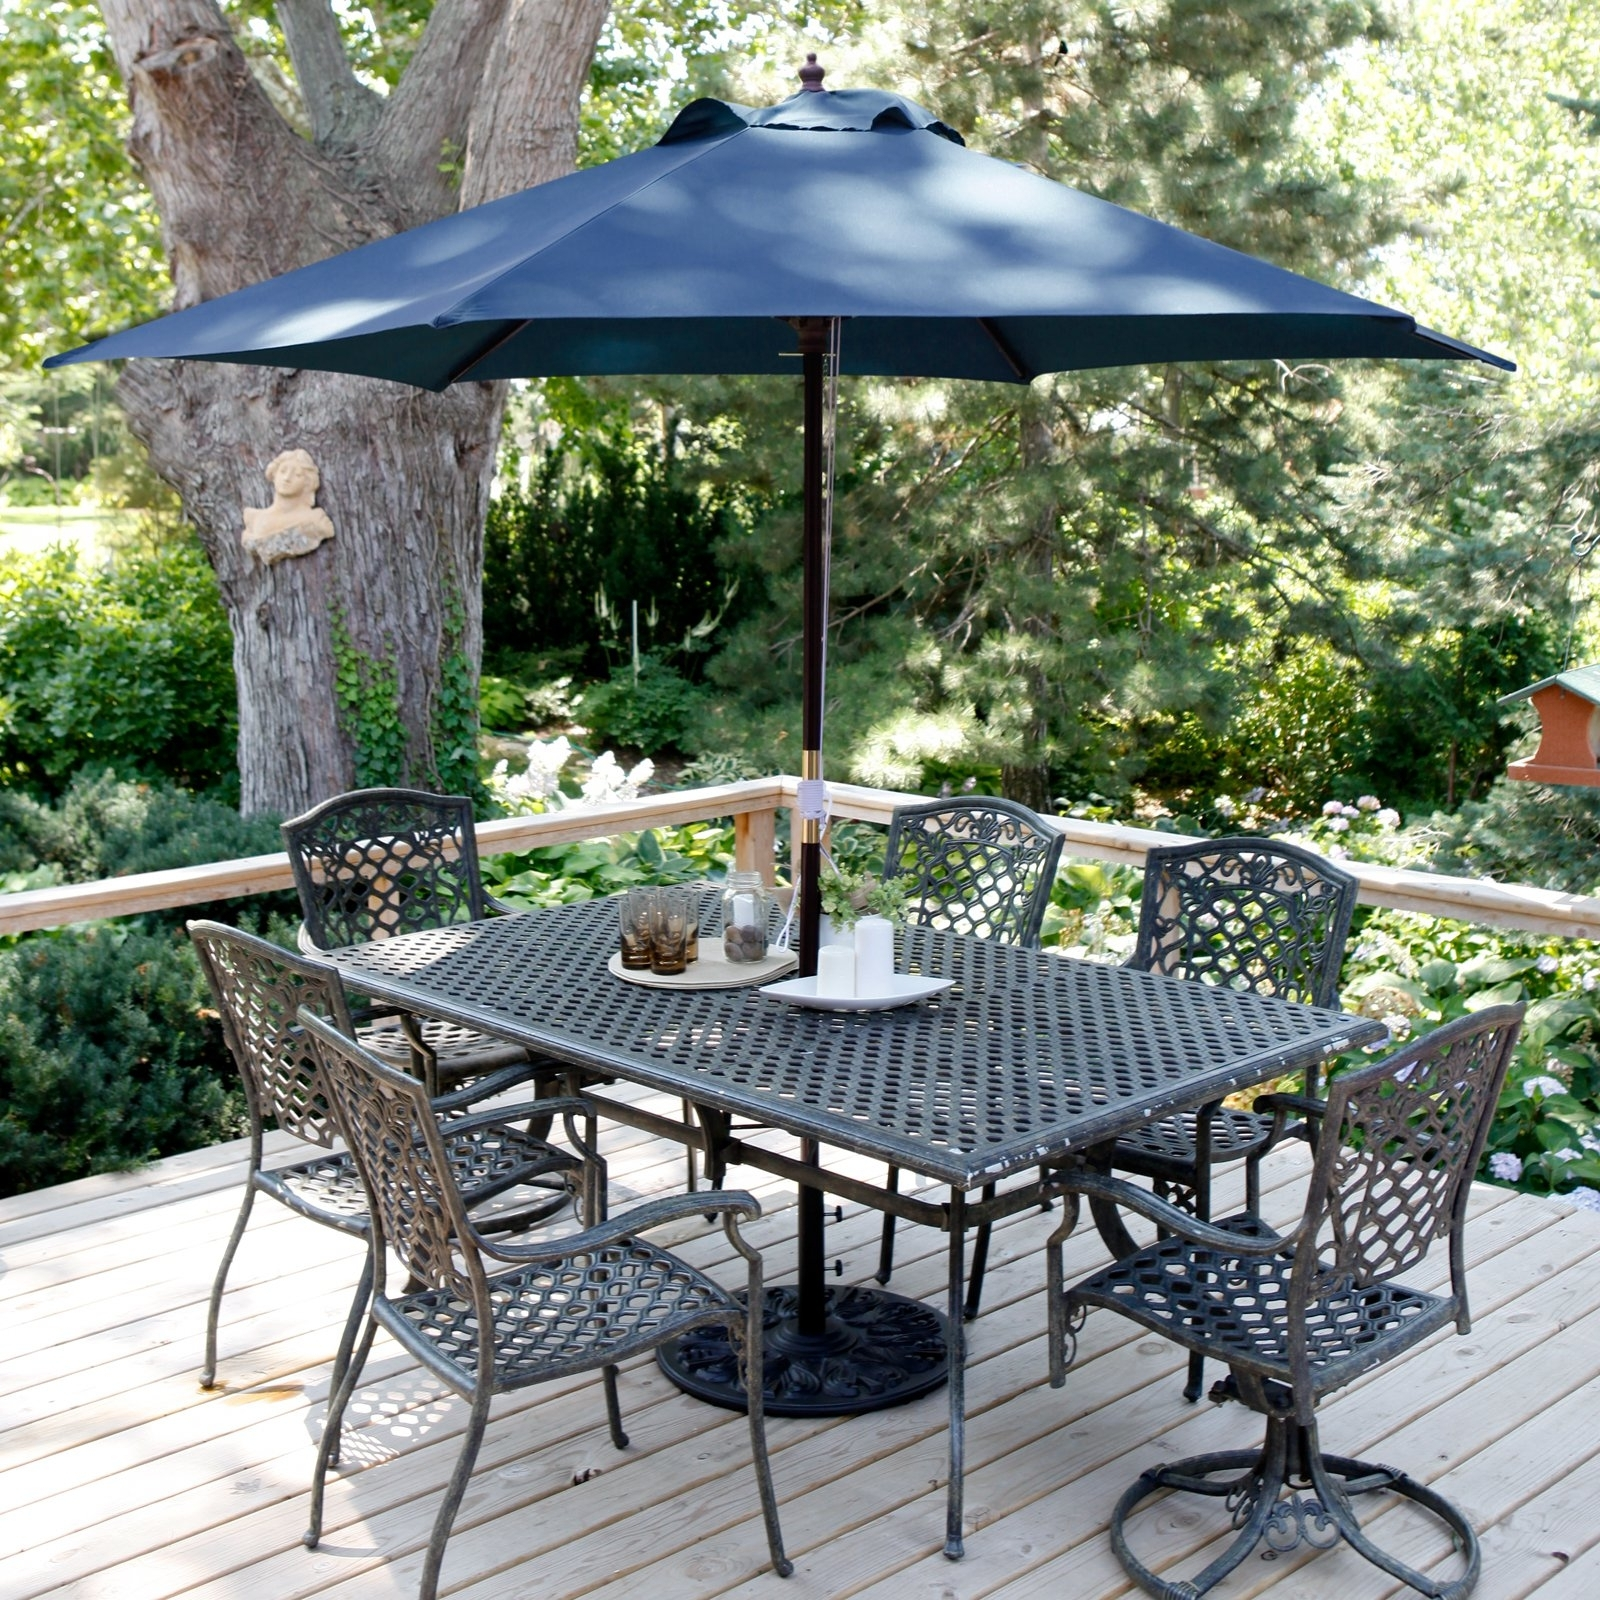 Coral Coast Key Largo 11 Ft. Wood Market Umbrella With Base Regarding Most Current 11 Ft Patio Umbrellas (Gallery 17 of 20)